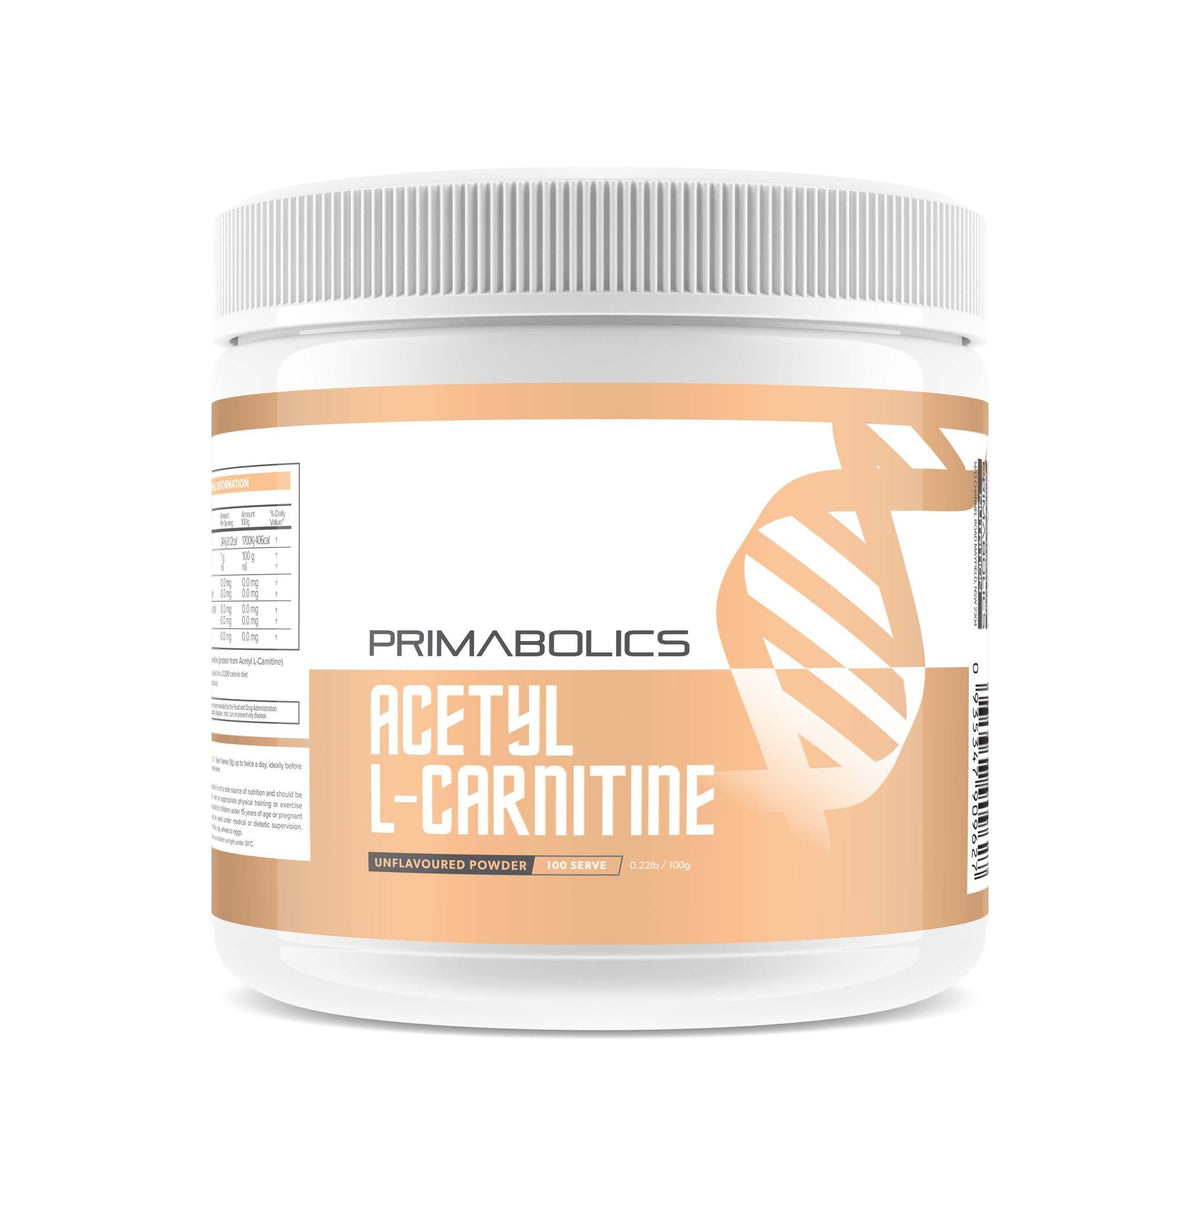 Primabolics Acetyl L-Carnitine - THE PROTEIN SHACK